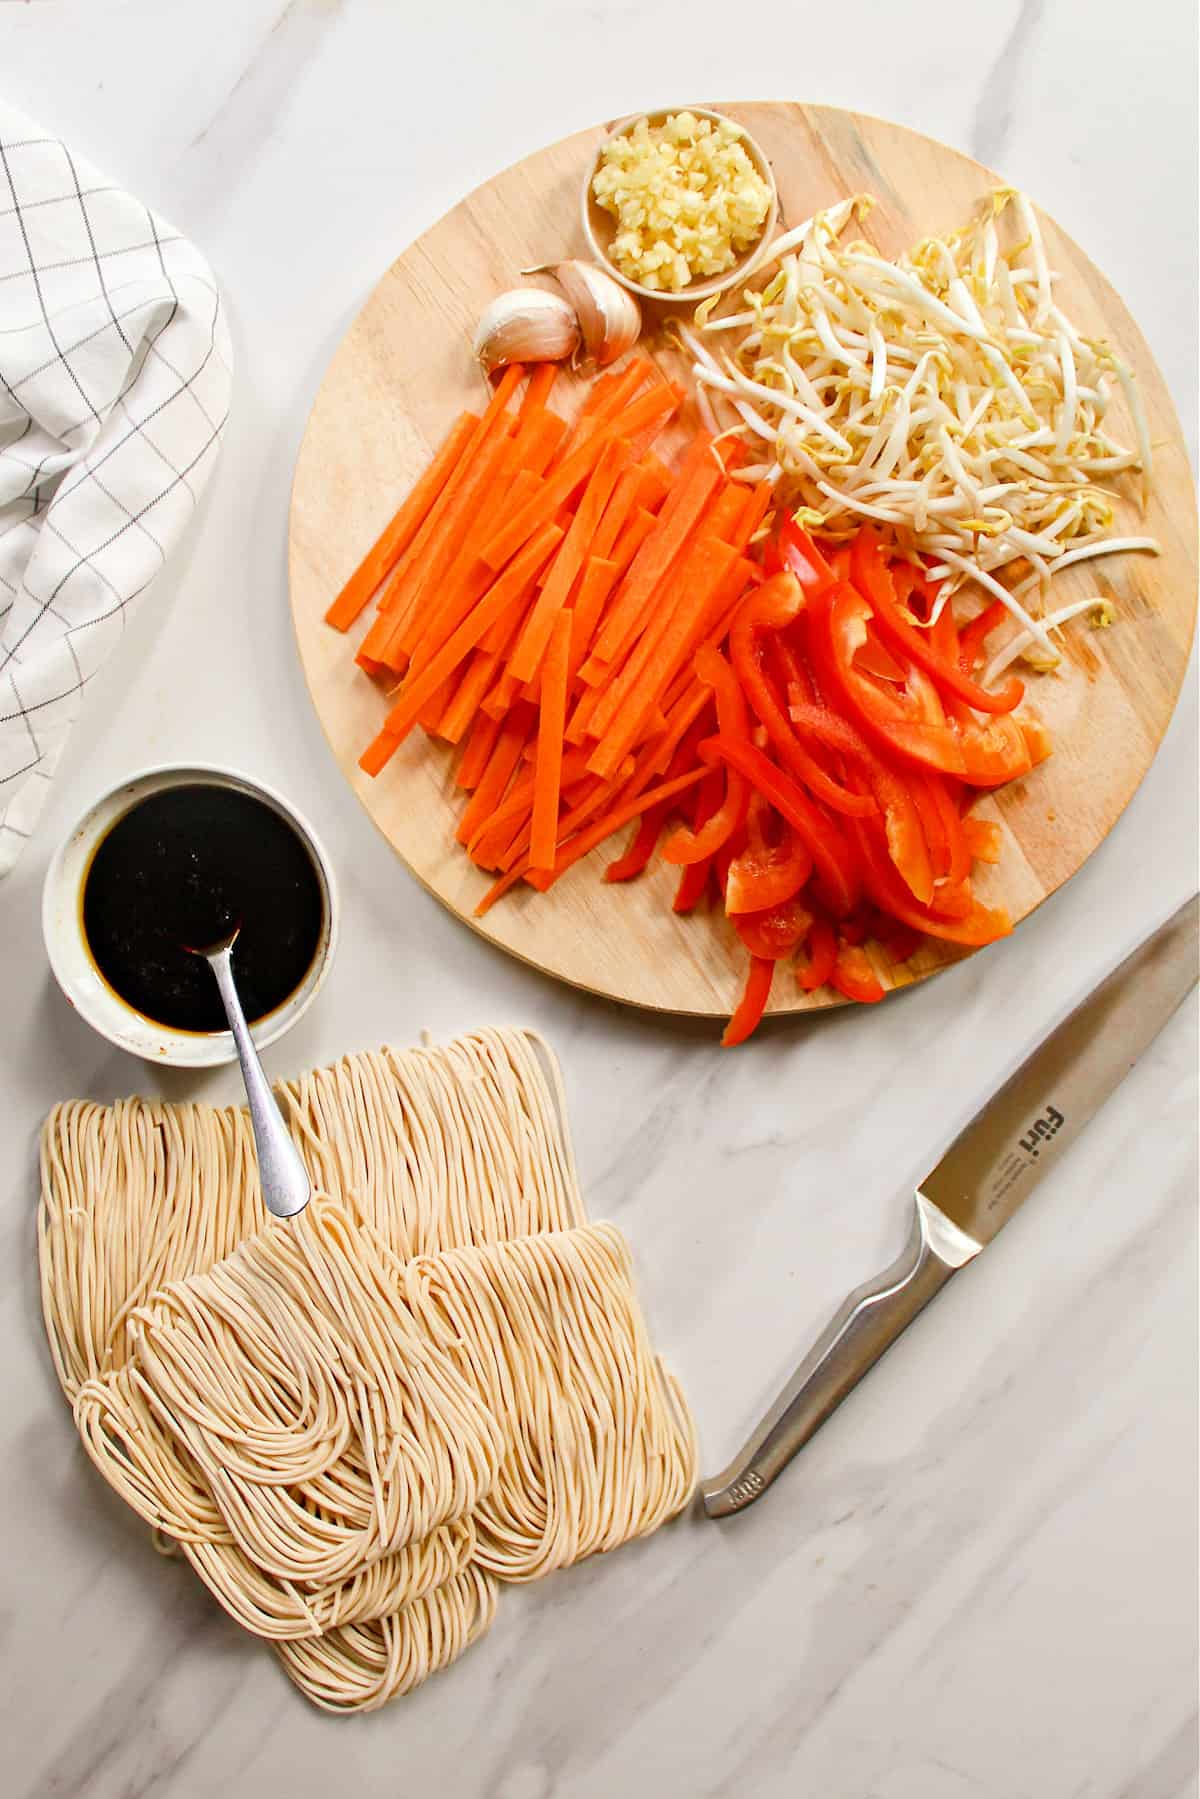 Ingredients top make the lo mein recipe on a white marble table top.